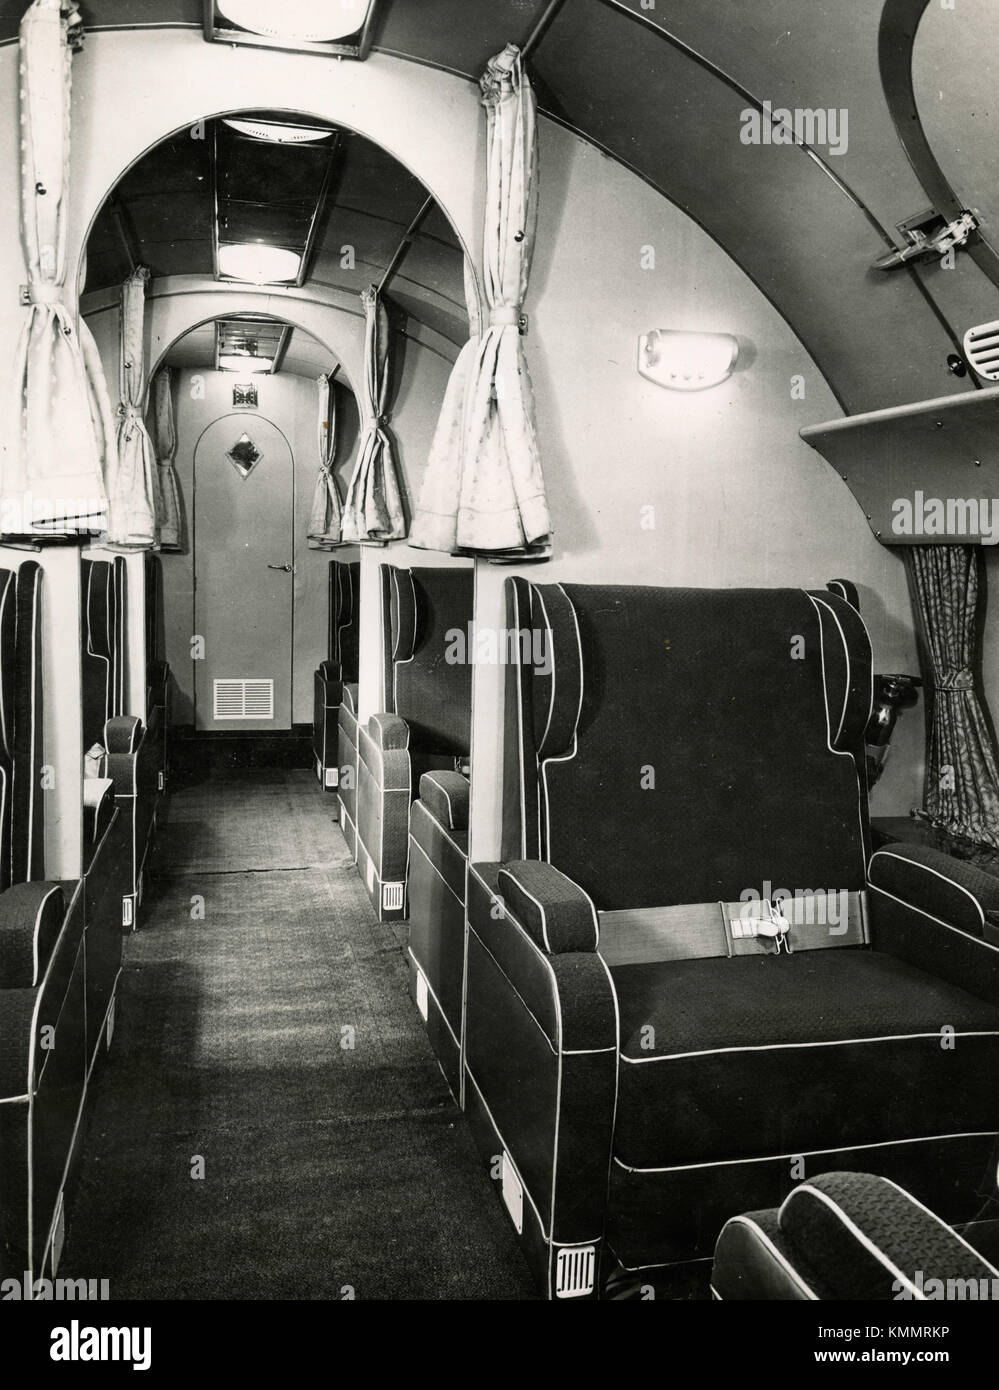 Inside view of the passengers seats of the Avro XX Tudor I aircraft, UK 1950s - Stock Image